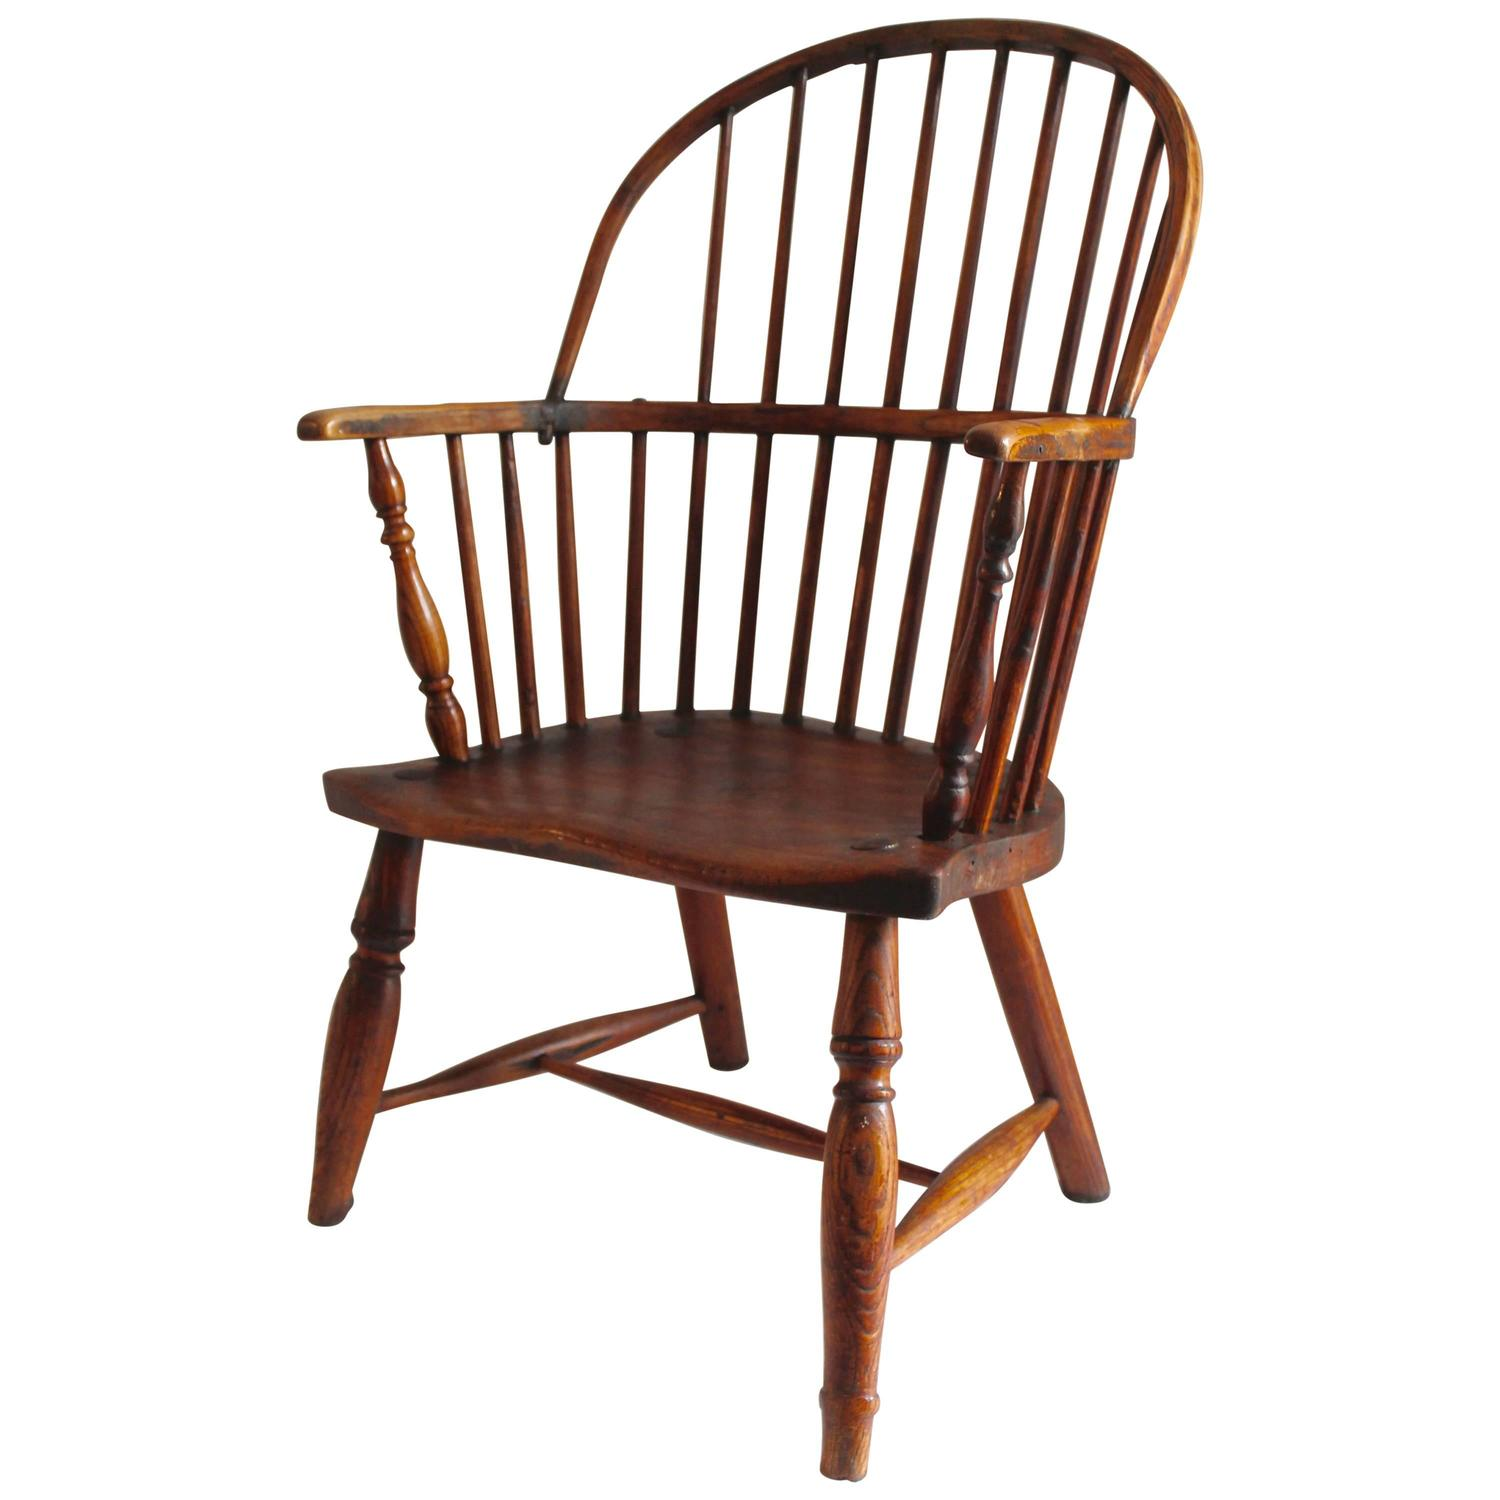 Early 18th Century English Windsor Chair For Sale at 1stdibs